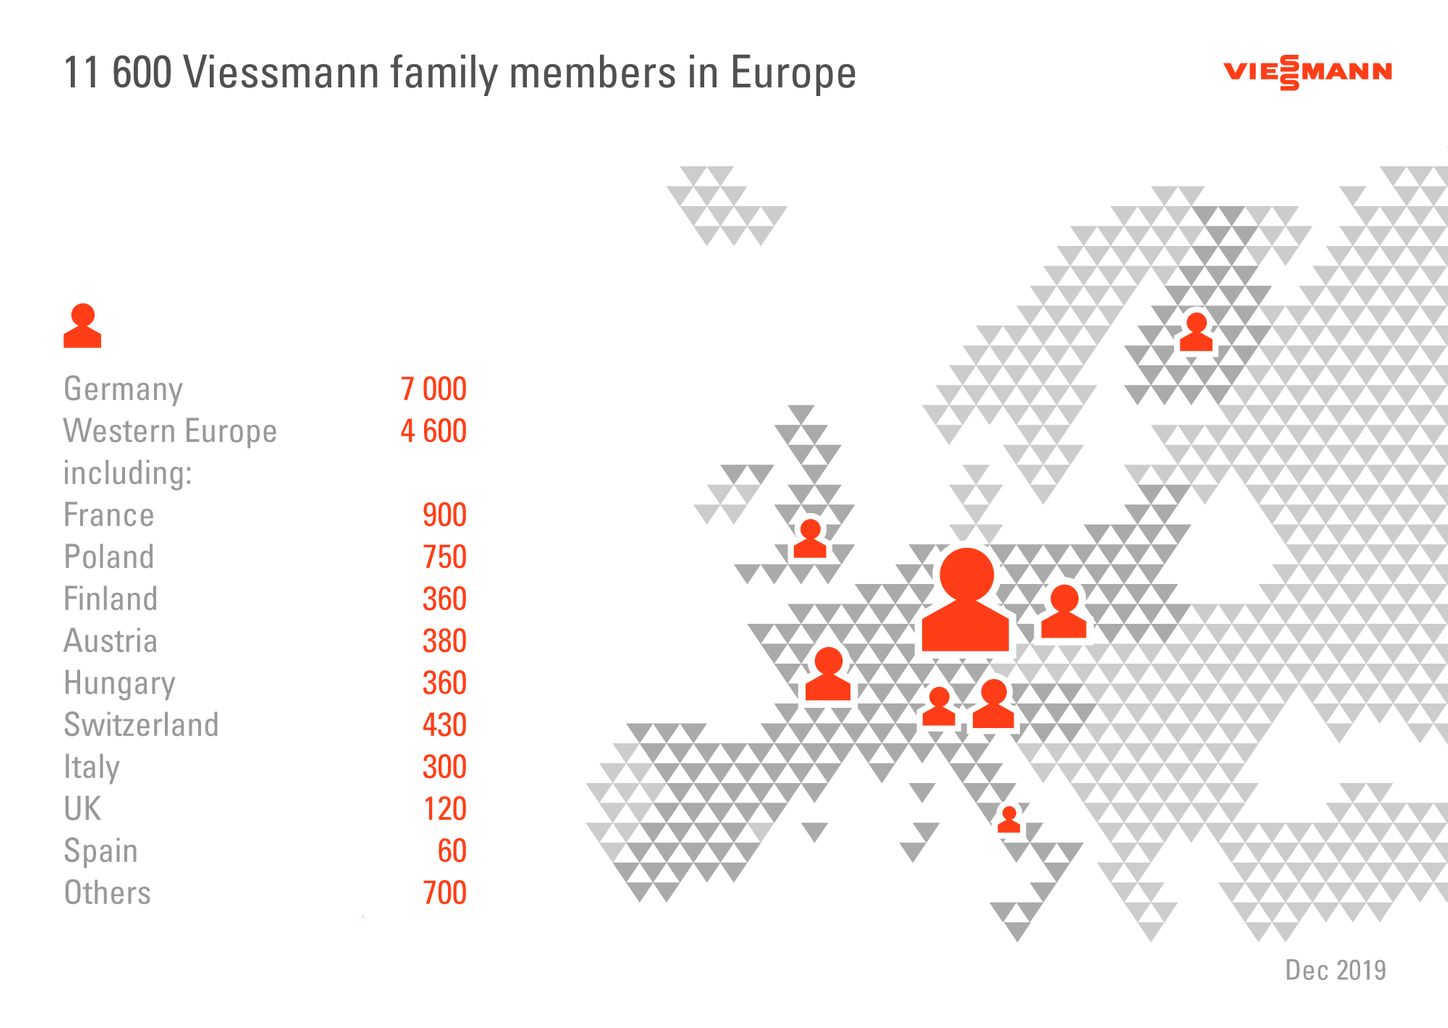 The graphic shows the Viessmann family members in Europe.